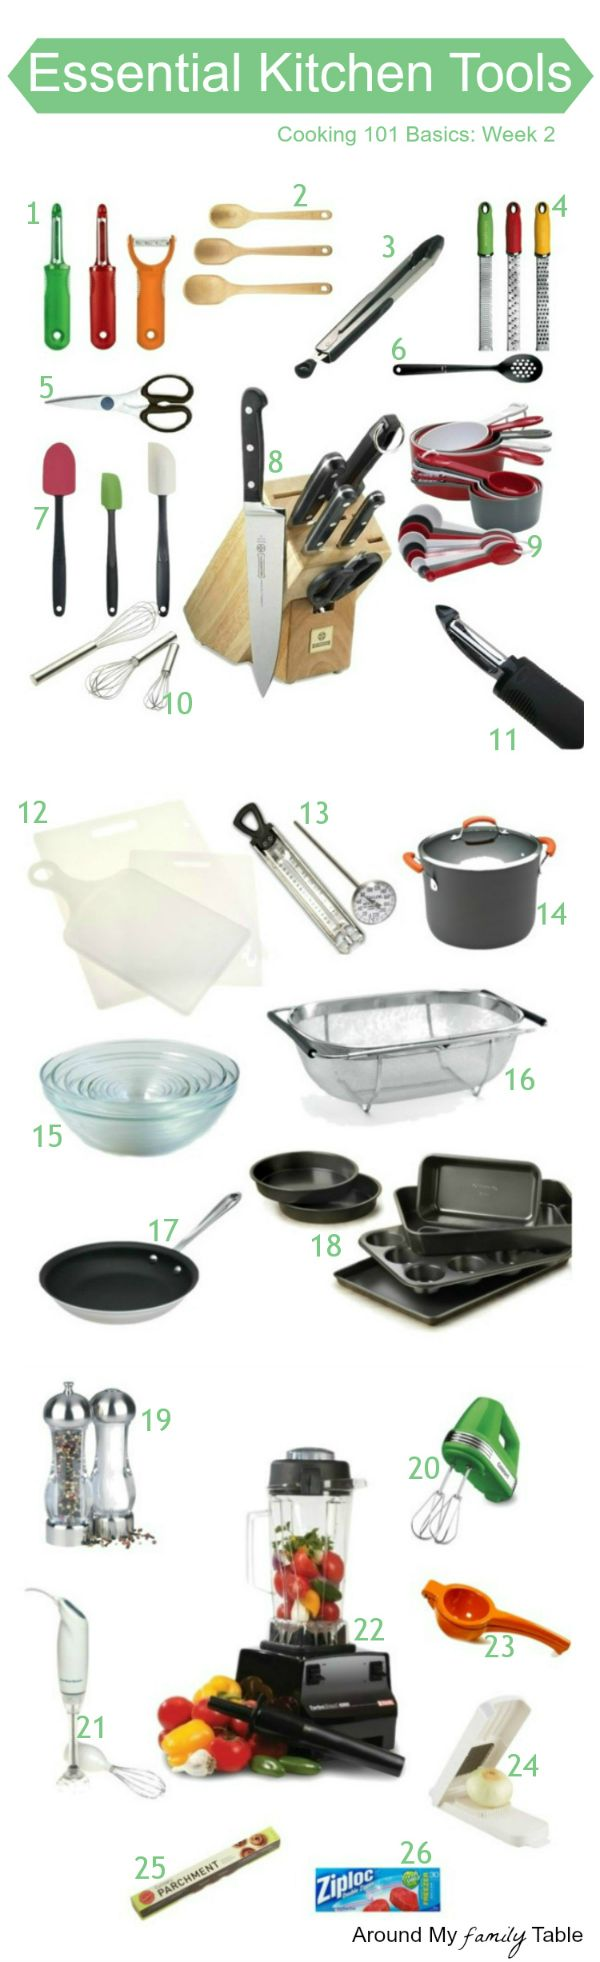 Uncategorized Trade In Kitchen Appliances best 10 kitchen tools ideas on pinterest house gadgets cooking 101 basics week 2 of the trade